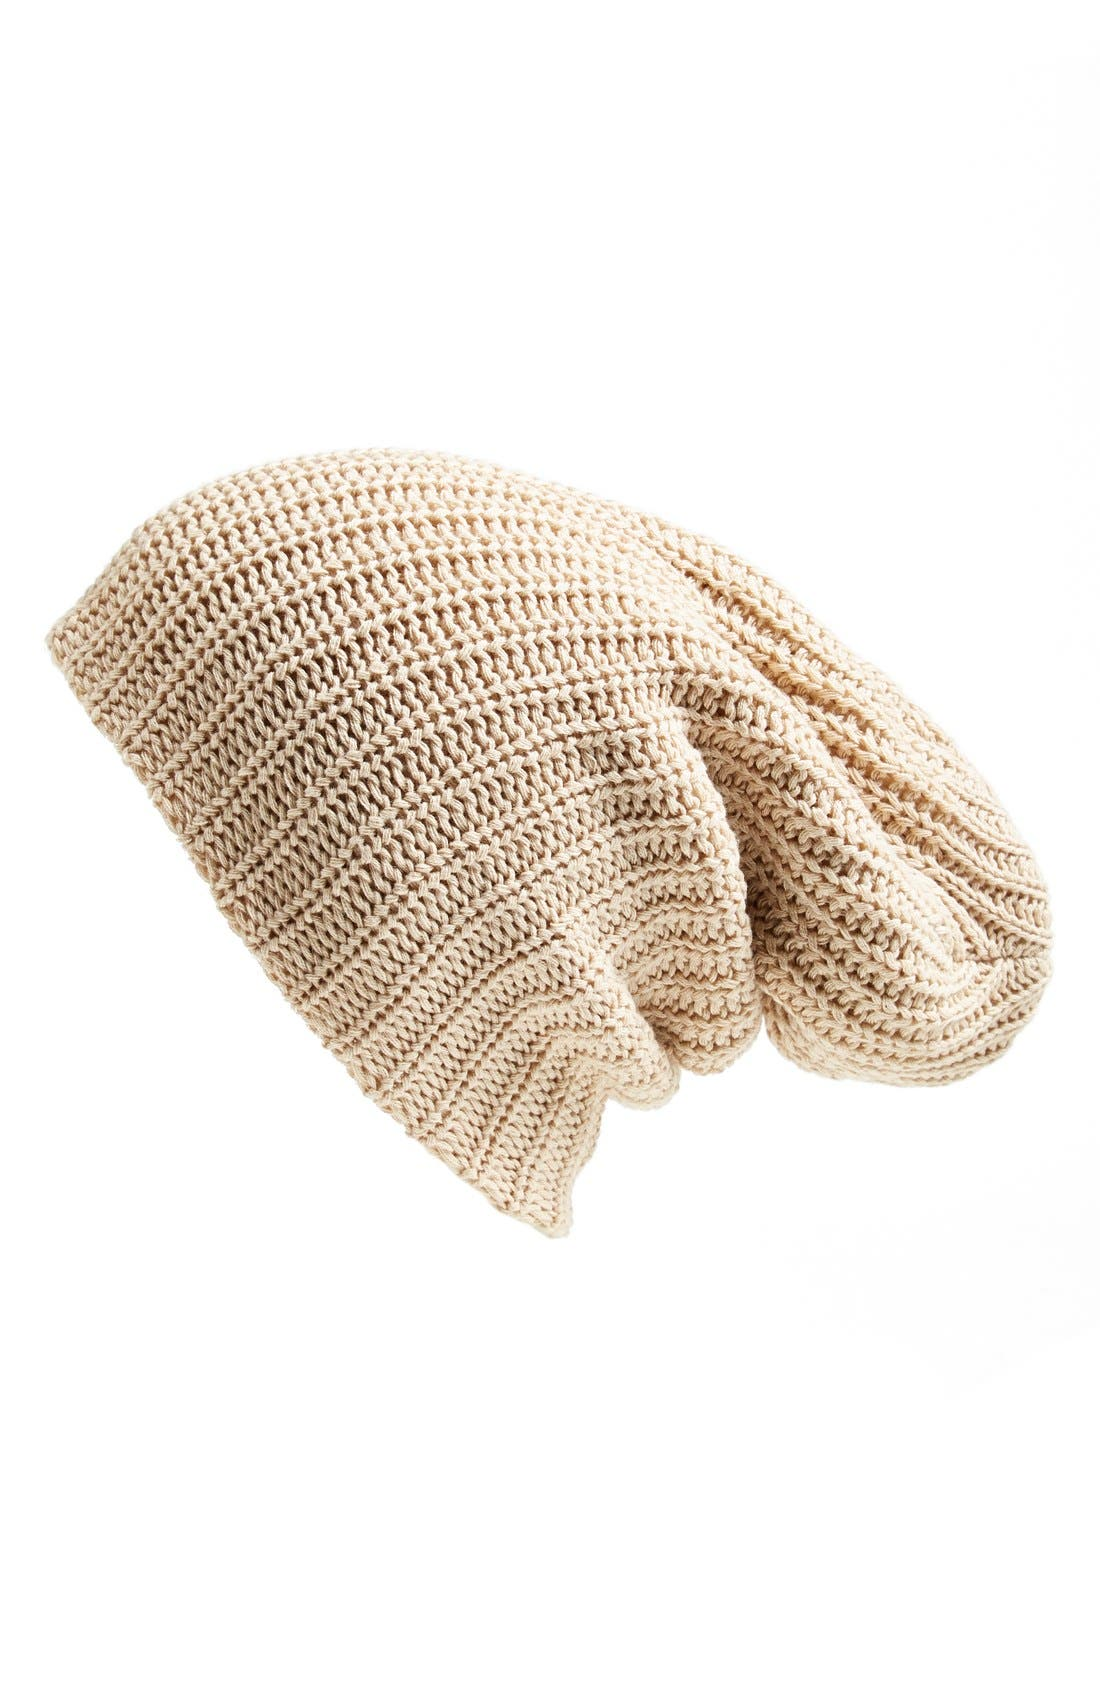 Alternate Image 1 Selected - Free People 'Capsule' Slouchy Knit Beanie